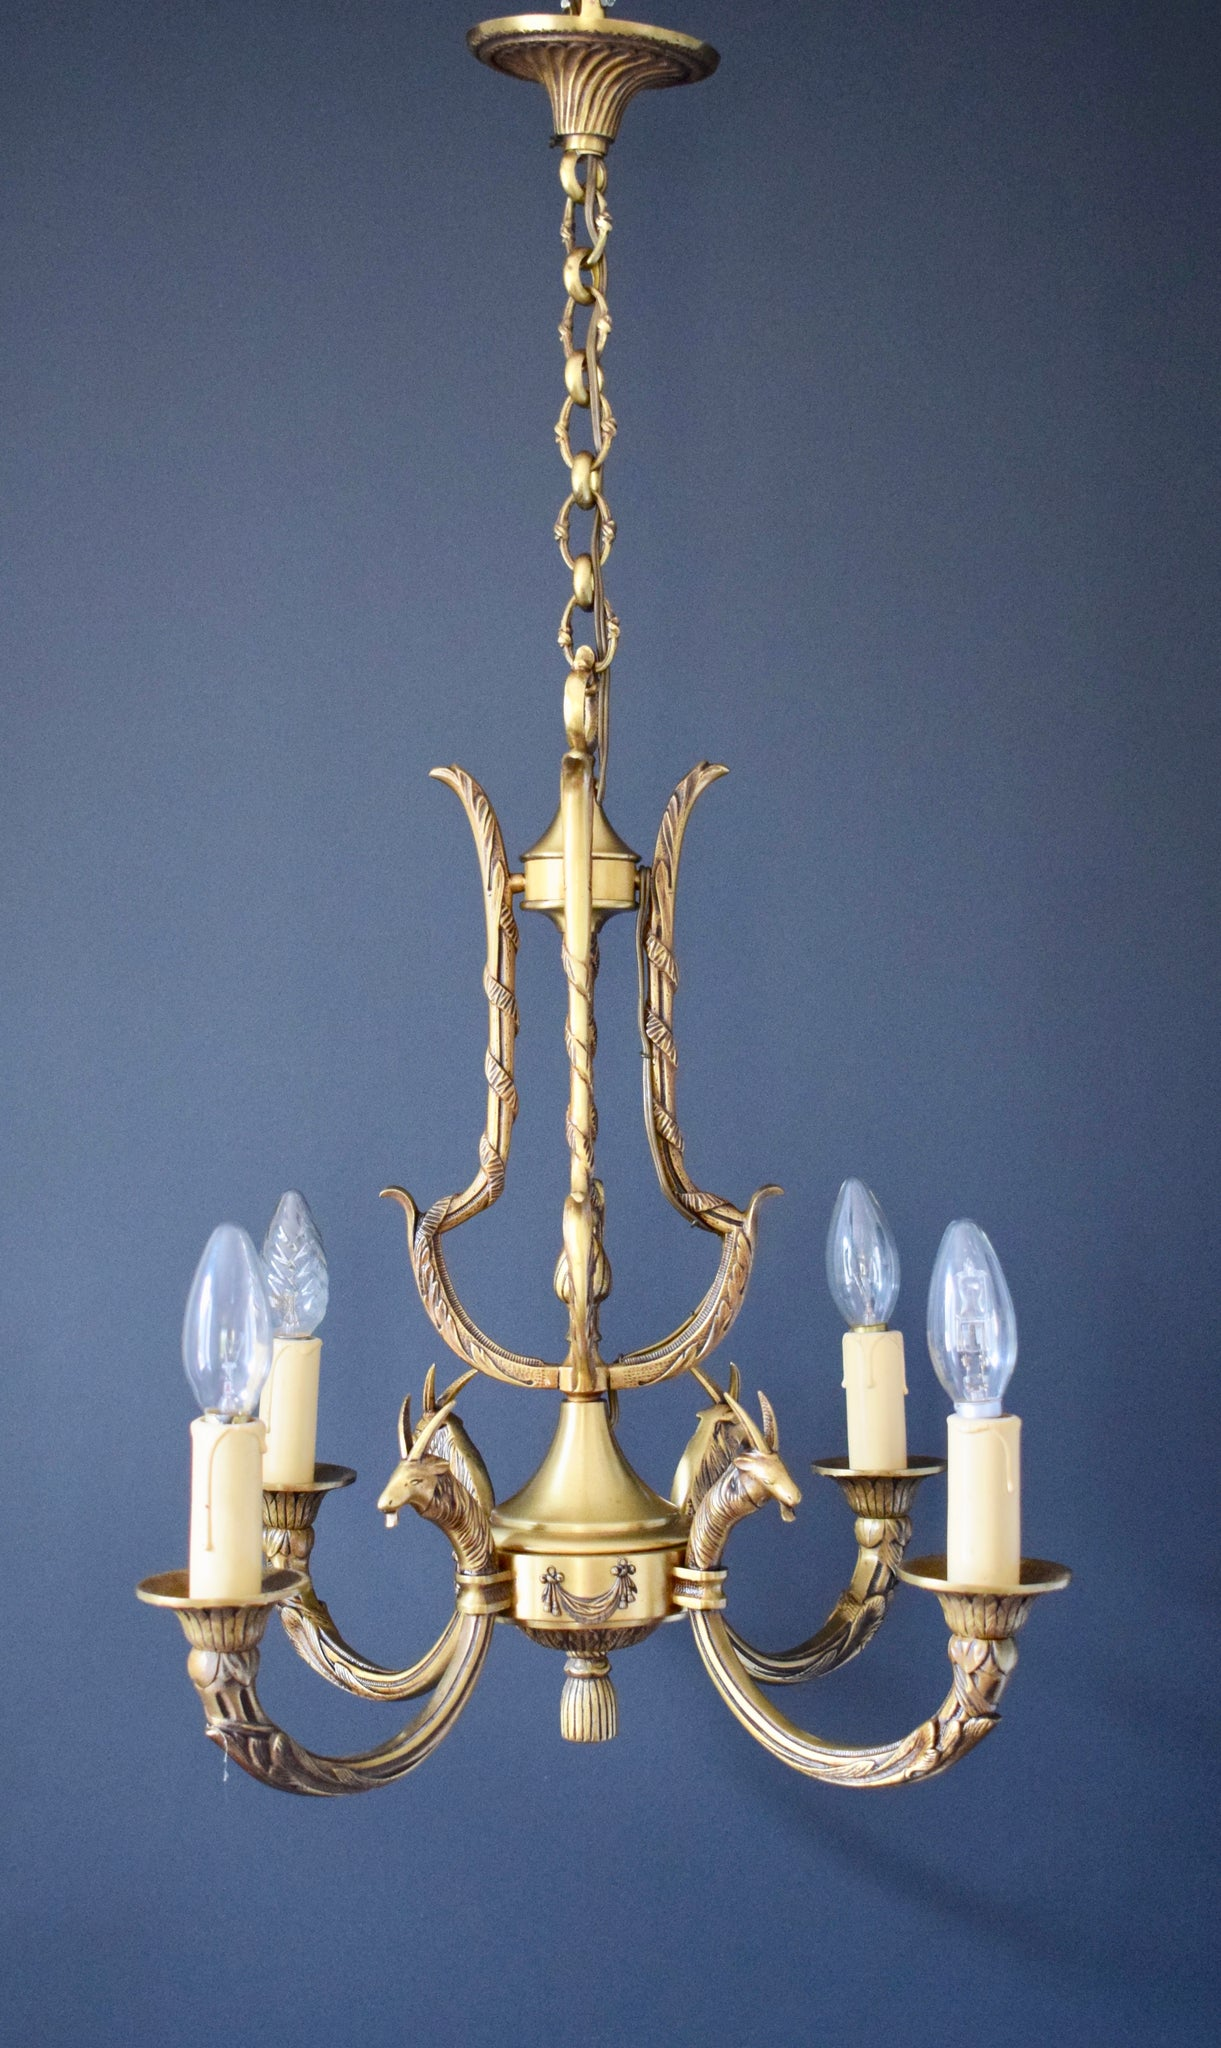 Louis XVI Chandelier - Charmantiques